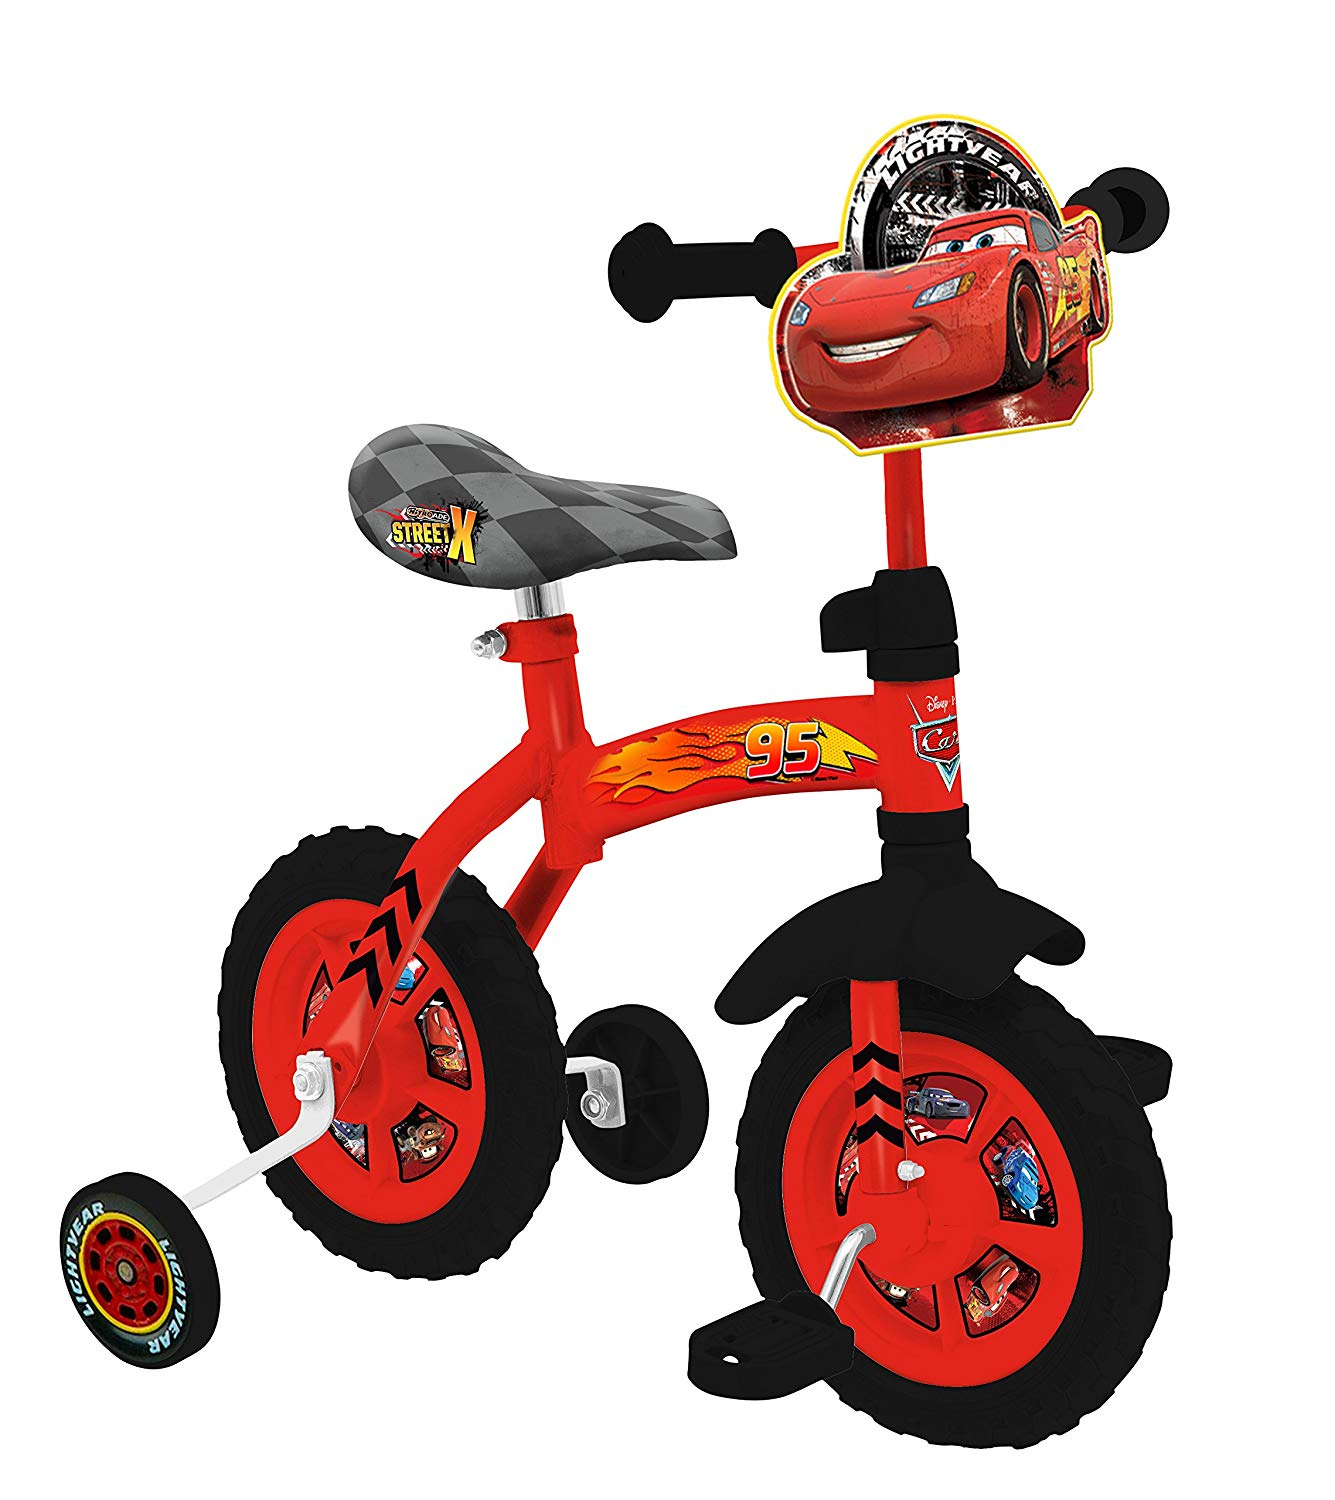 1335x1500 Disney Cars 10 Inch 2 In 1 Training Bike Amazon.co.uk Toys Amp Games